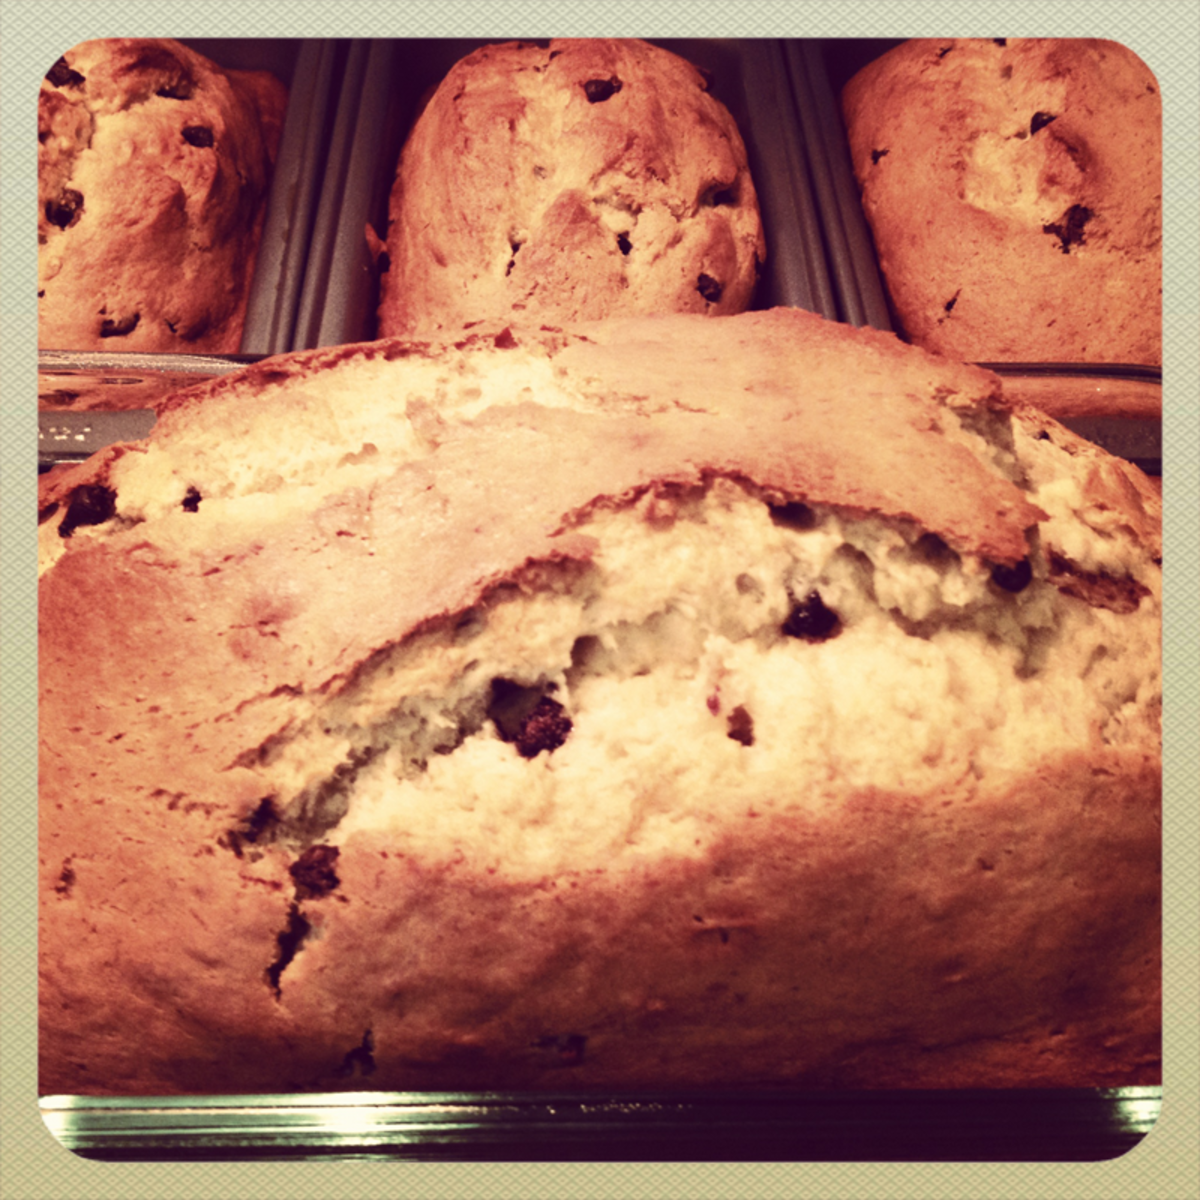 Recipe for Chocolate Chip Banana Bread